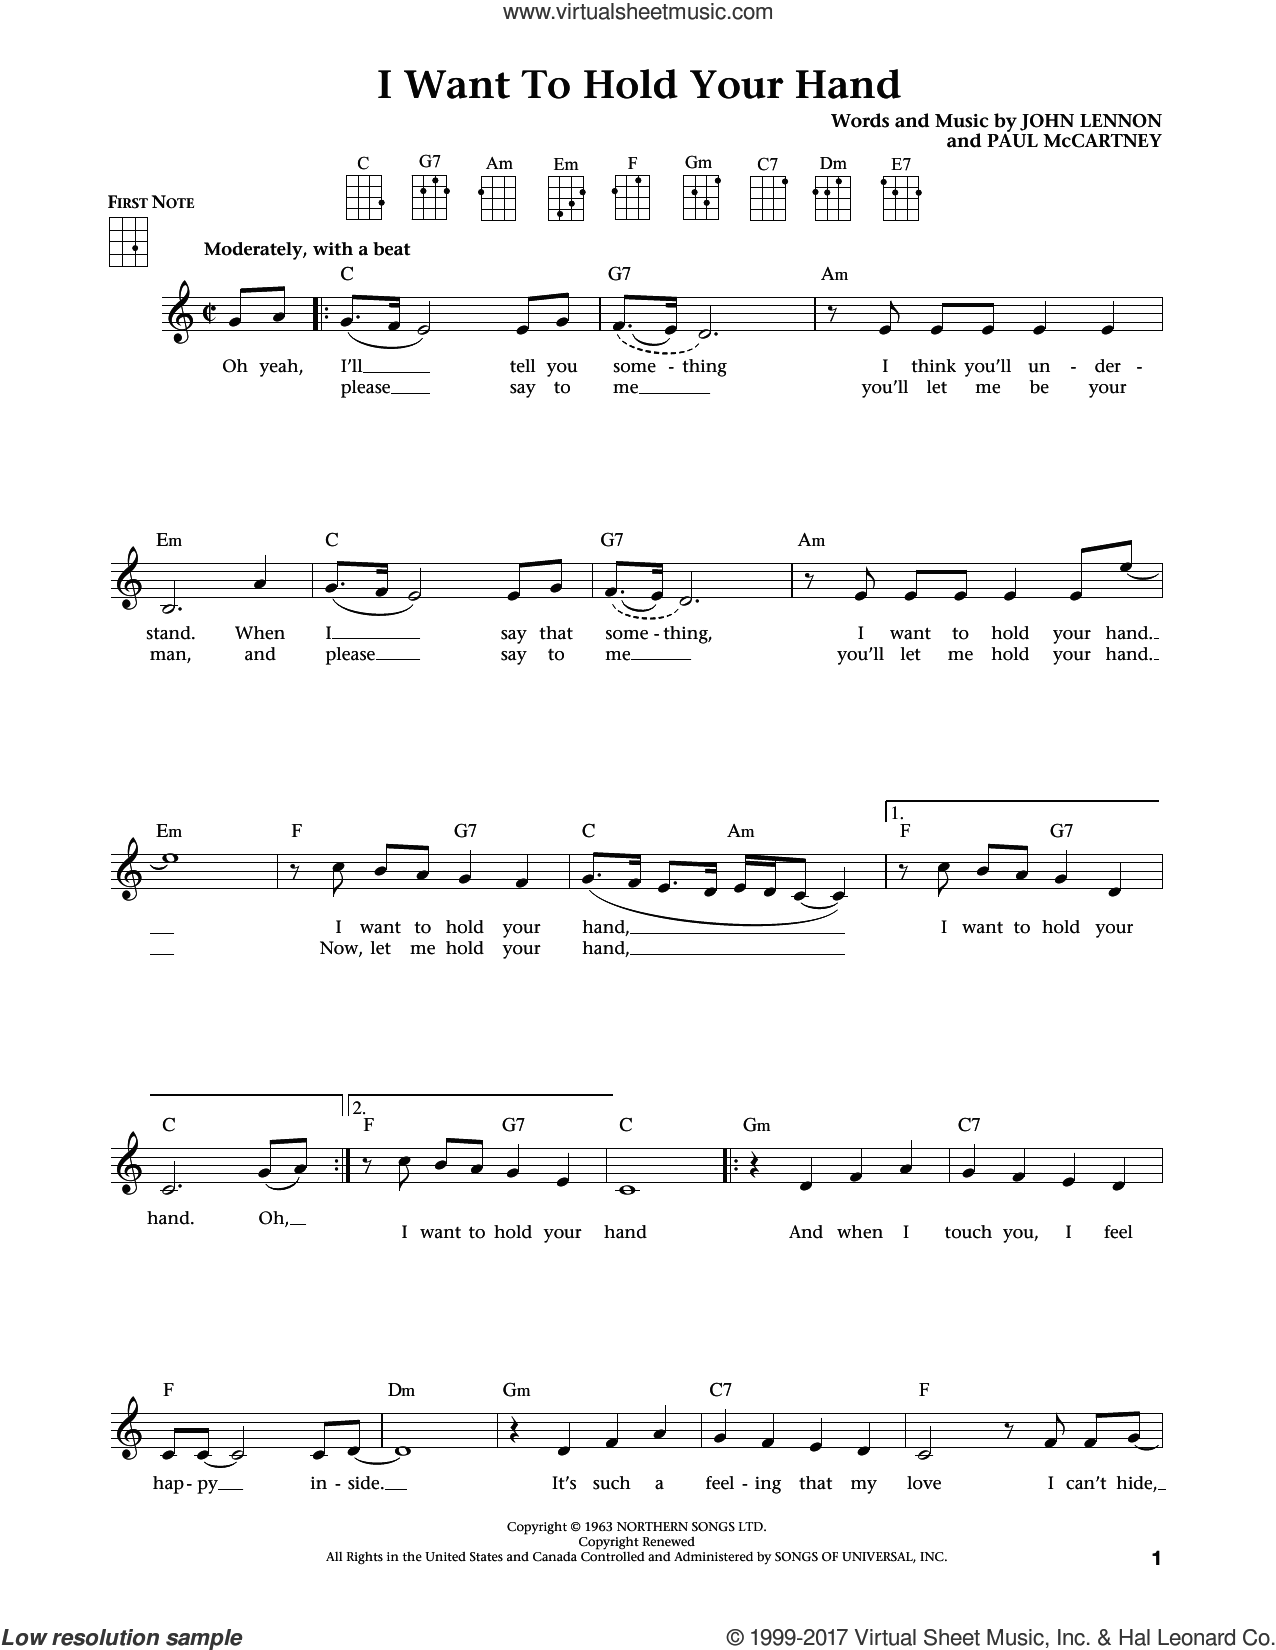 I Want To Hold Your Hand (from The Daily Ukulele) (arr. Liz and Jim Beloff) sheet music for ukulele by The Beatles, Jim Beloff and Liz Beloff, intermediate skill level